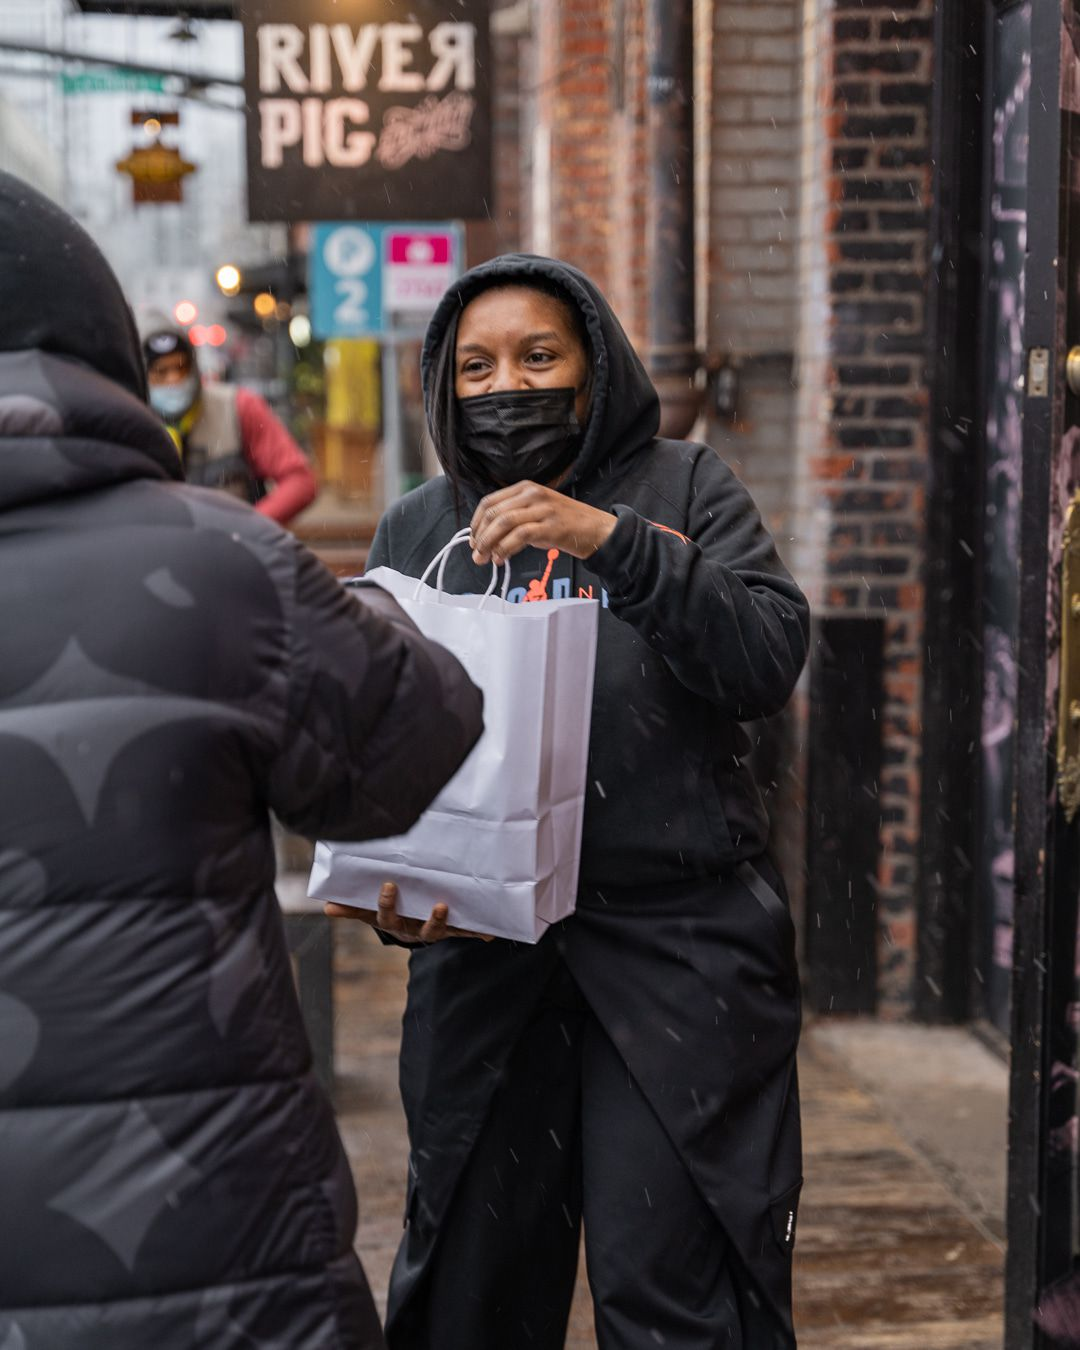 A woman in a black mask and hoodie holds out a white paper bag to a person in a parka.